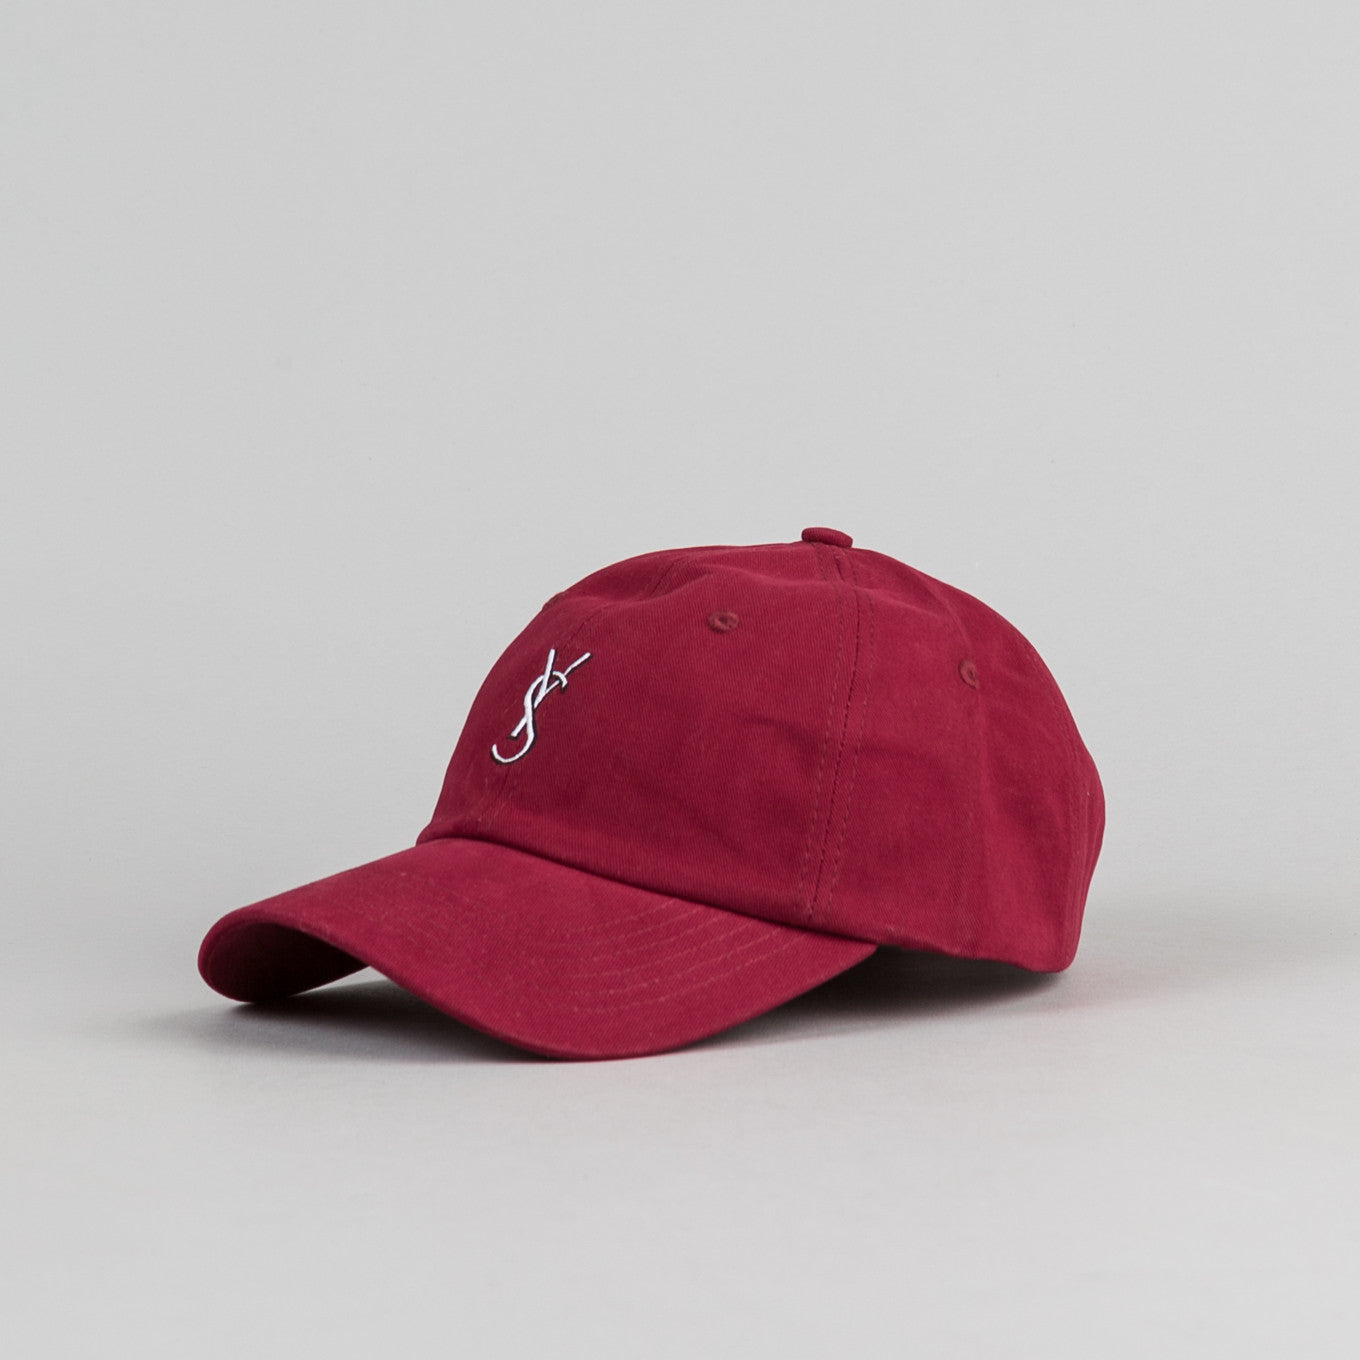 Yardsale YS 6 Panel Cap - Burgundy